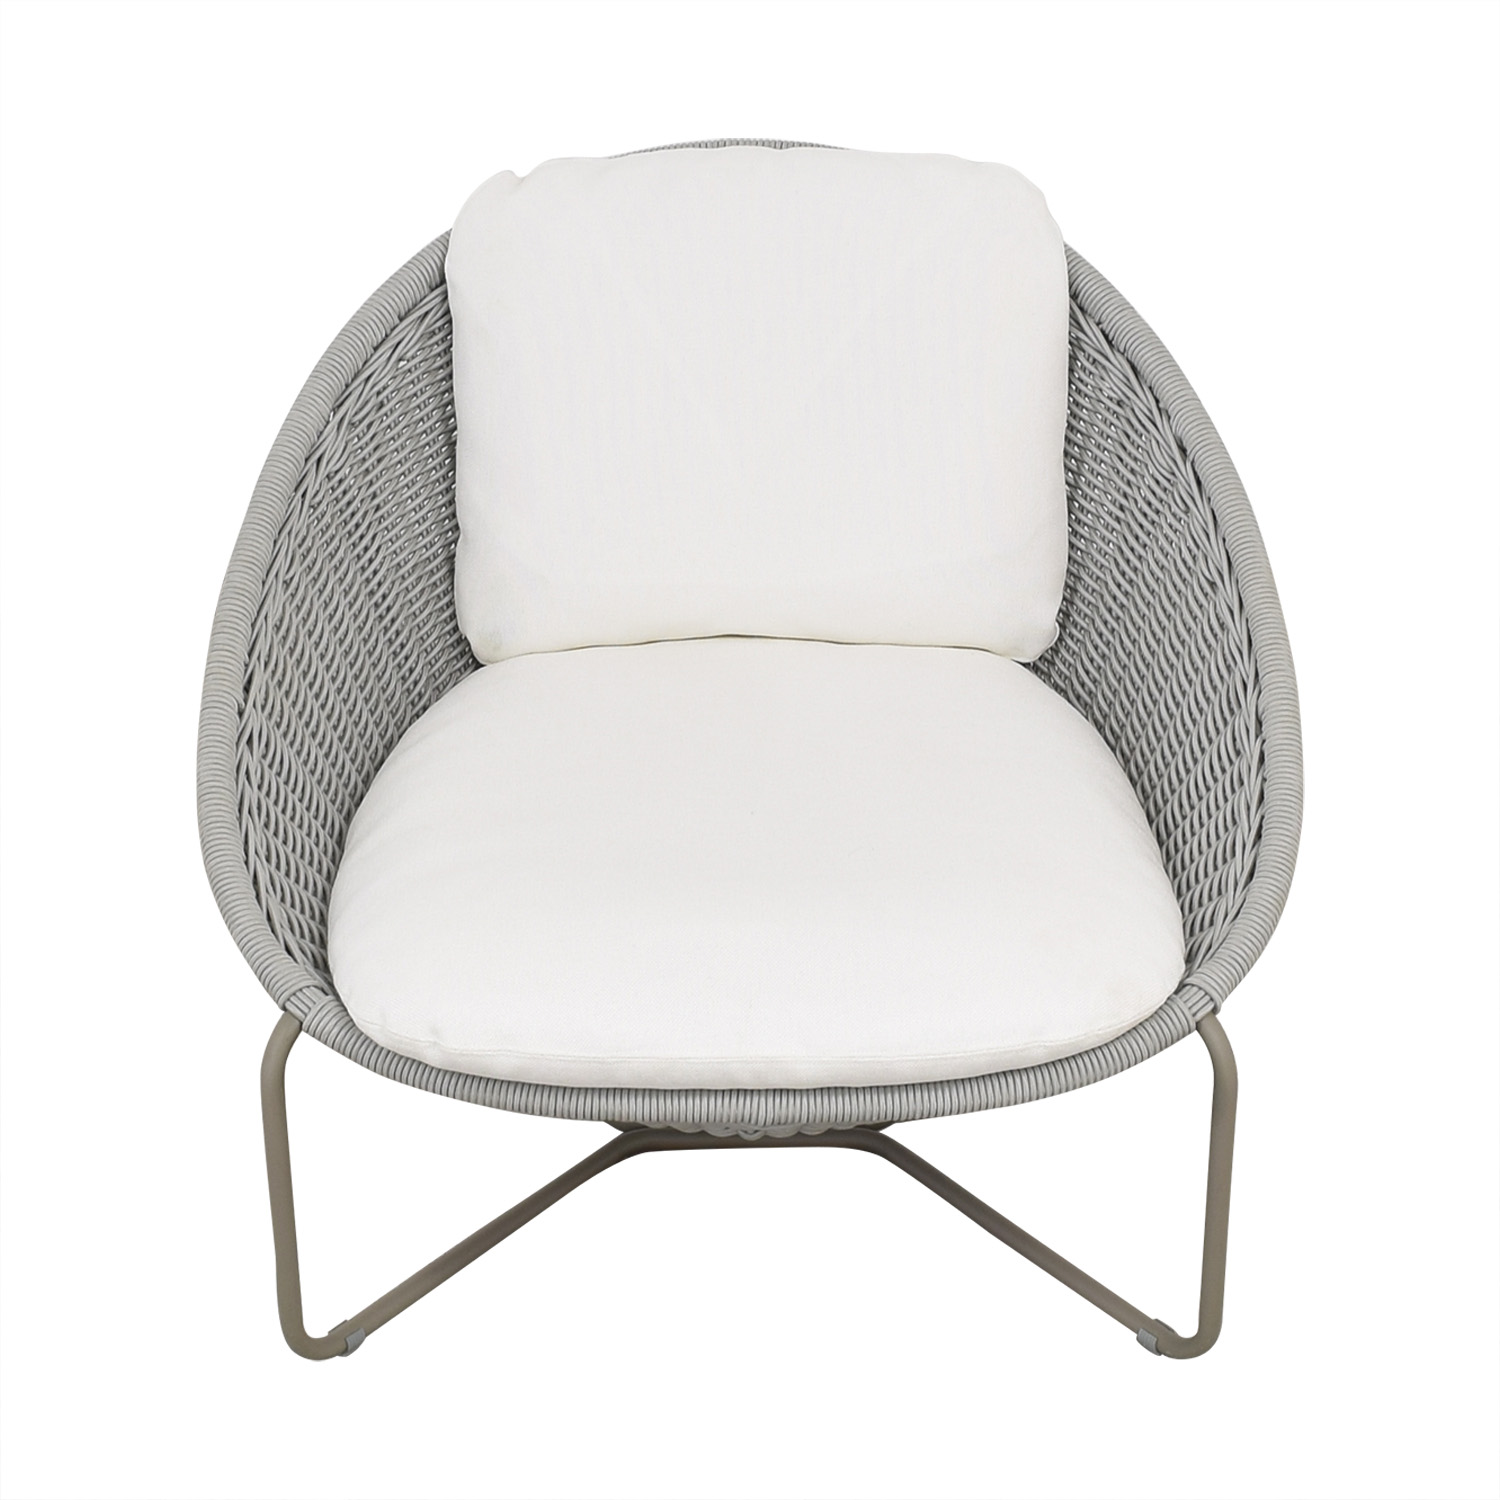 Crate & Barrel Crate & Barrel Morocco Oval Lounge Chair with Cushion ma